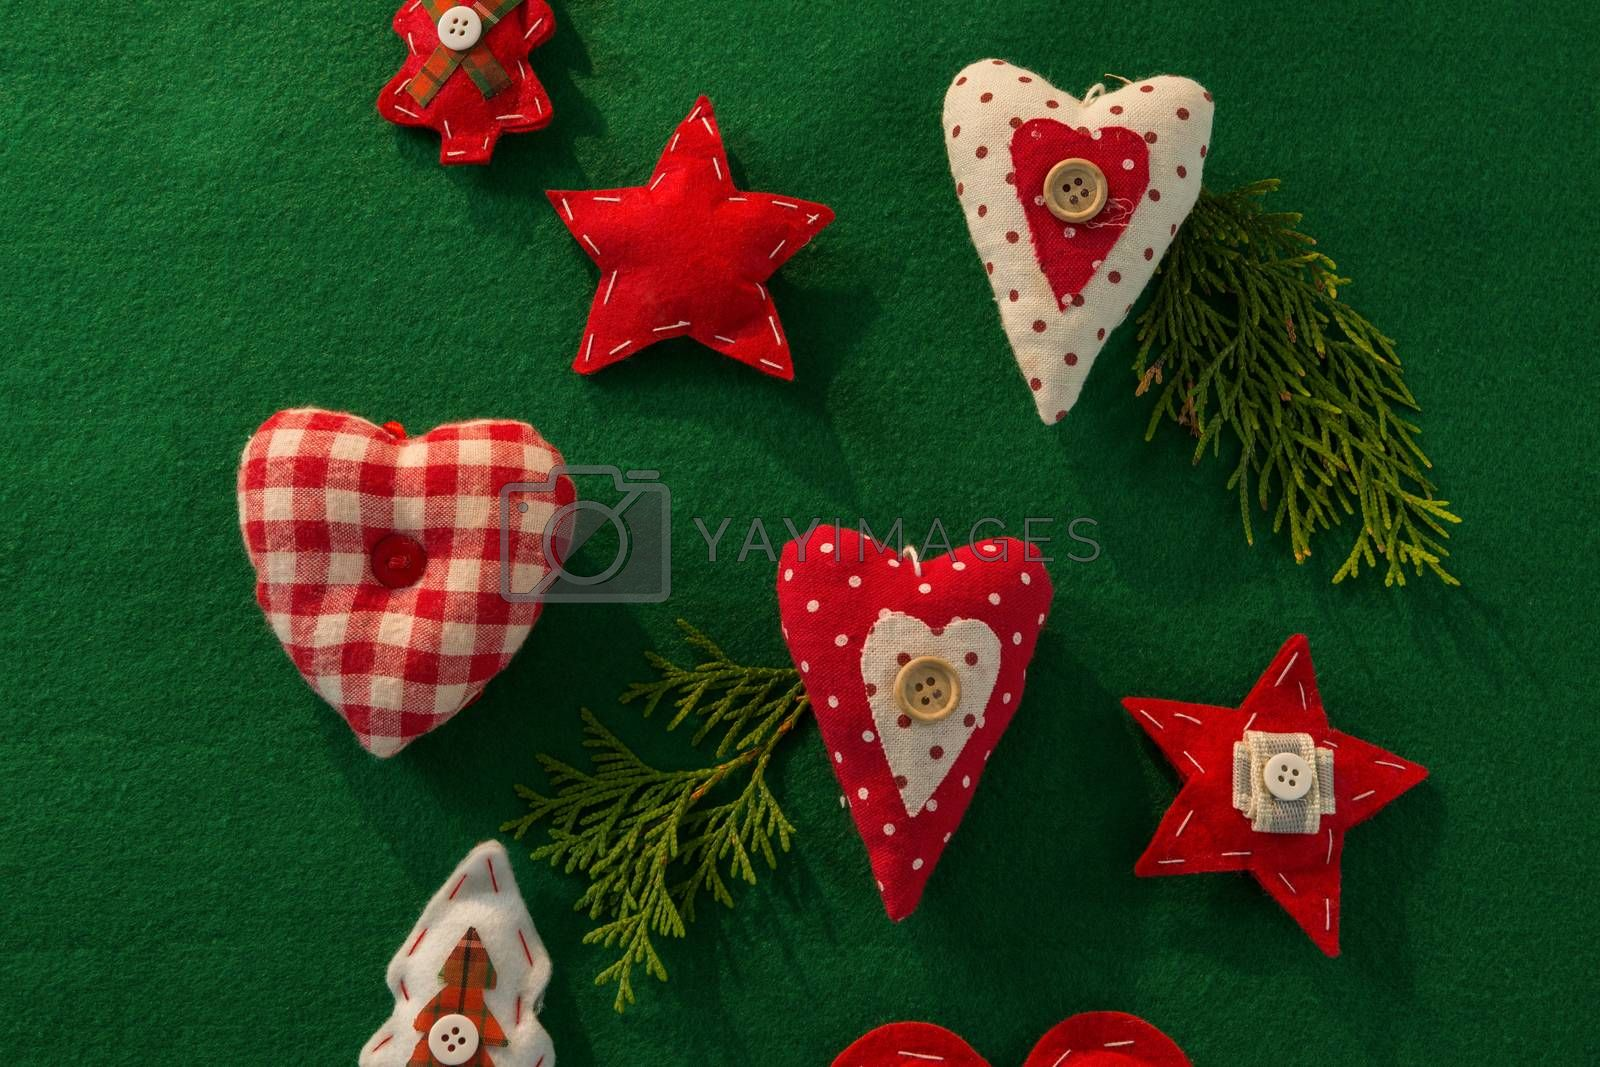 Overhead view of Christmas decoration with various shapes by Wavebreakmedia